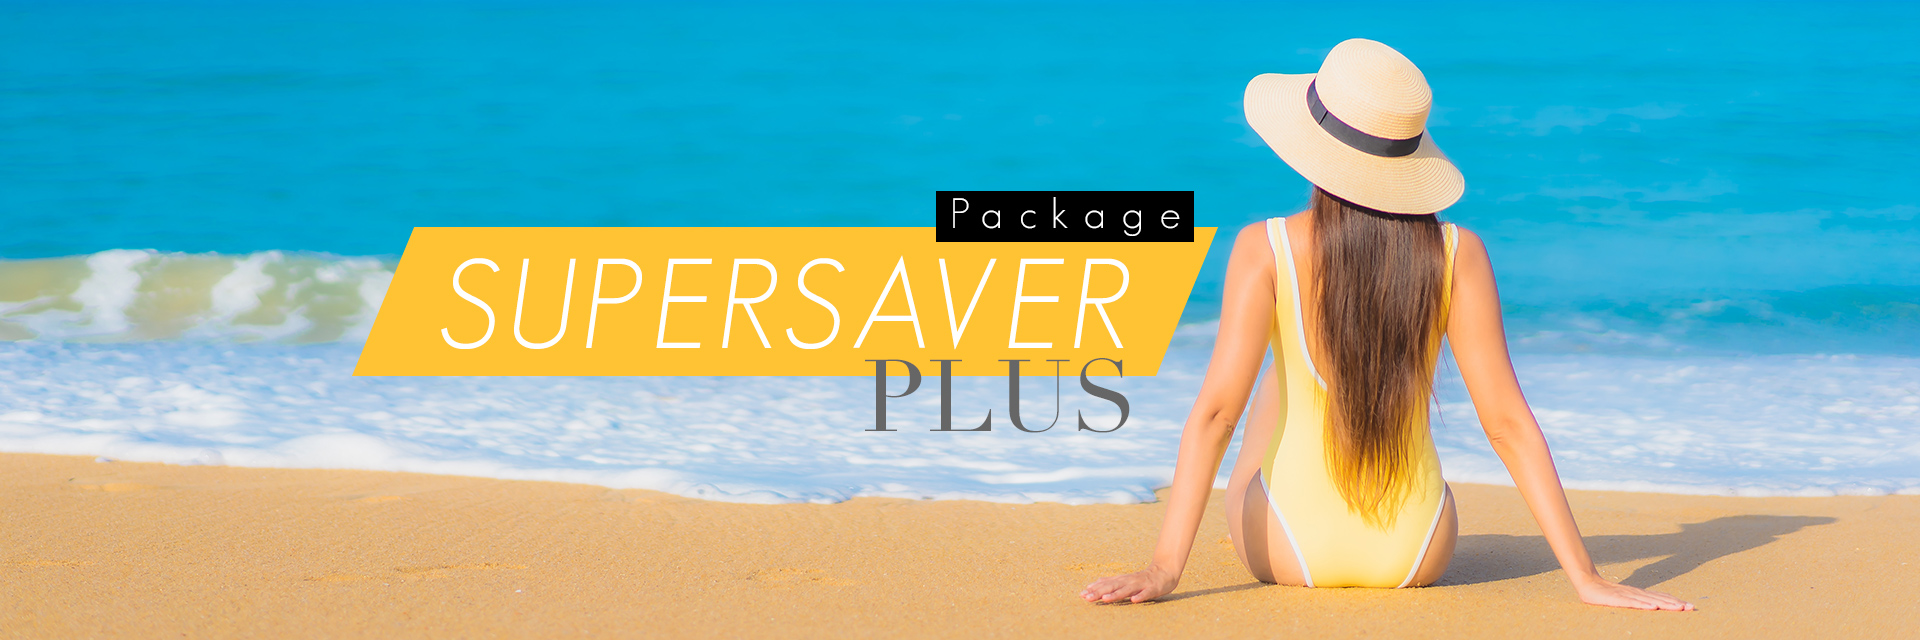 Supersaver Plus Package